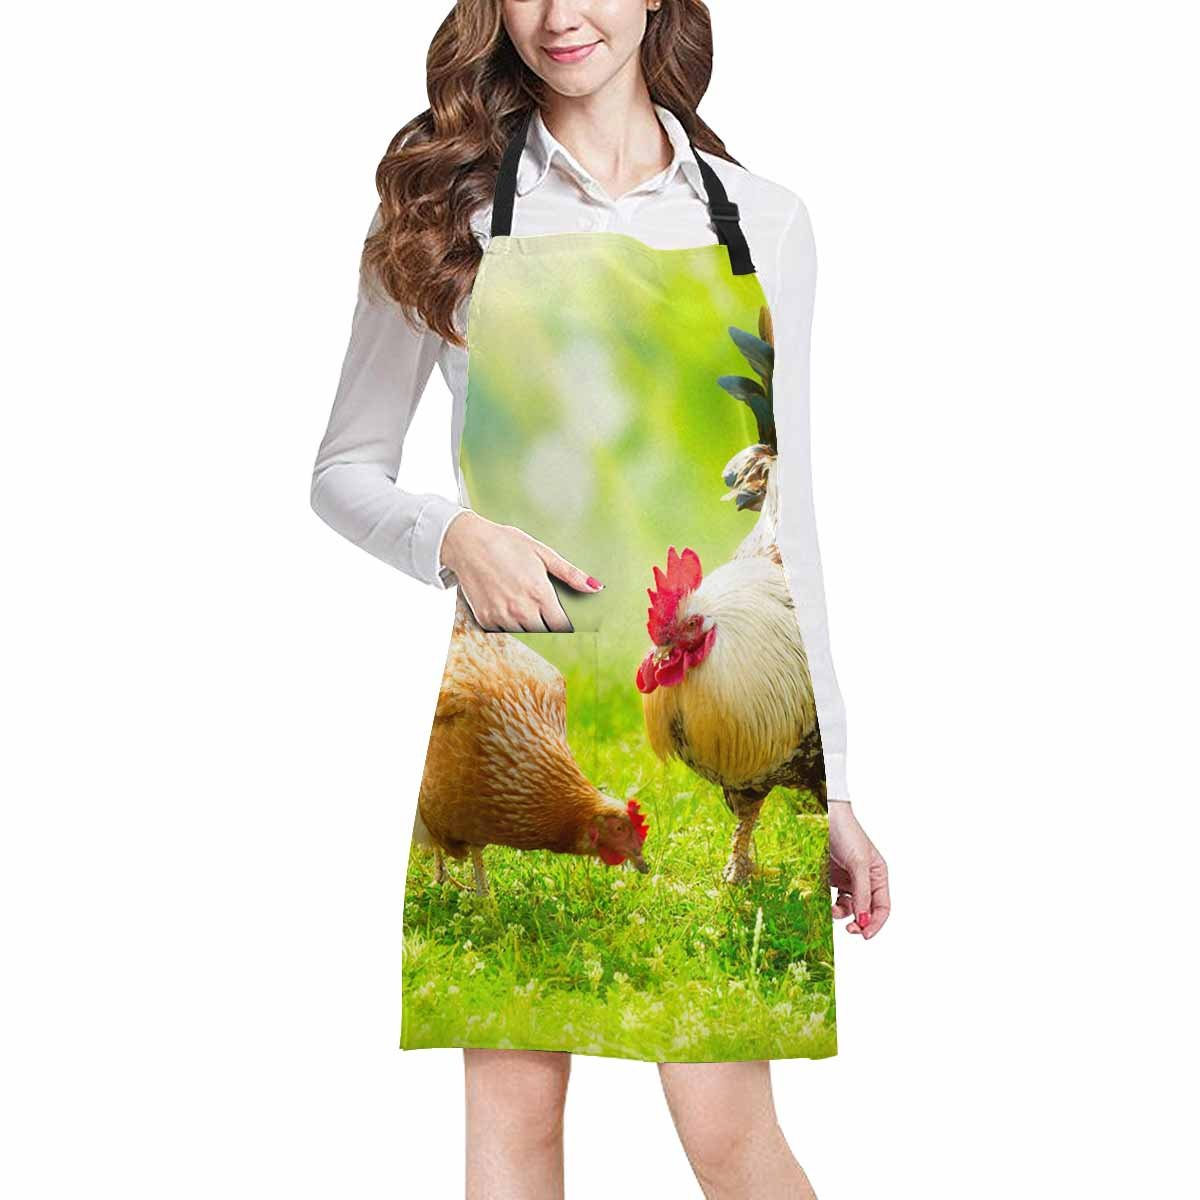 InterestPrint Funny Animal Chickens Cock and Hens Adjustable Bib Apron with Pockets - Commercial Restaurant and Home Kitchen Adjustable Apron, Plus Size